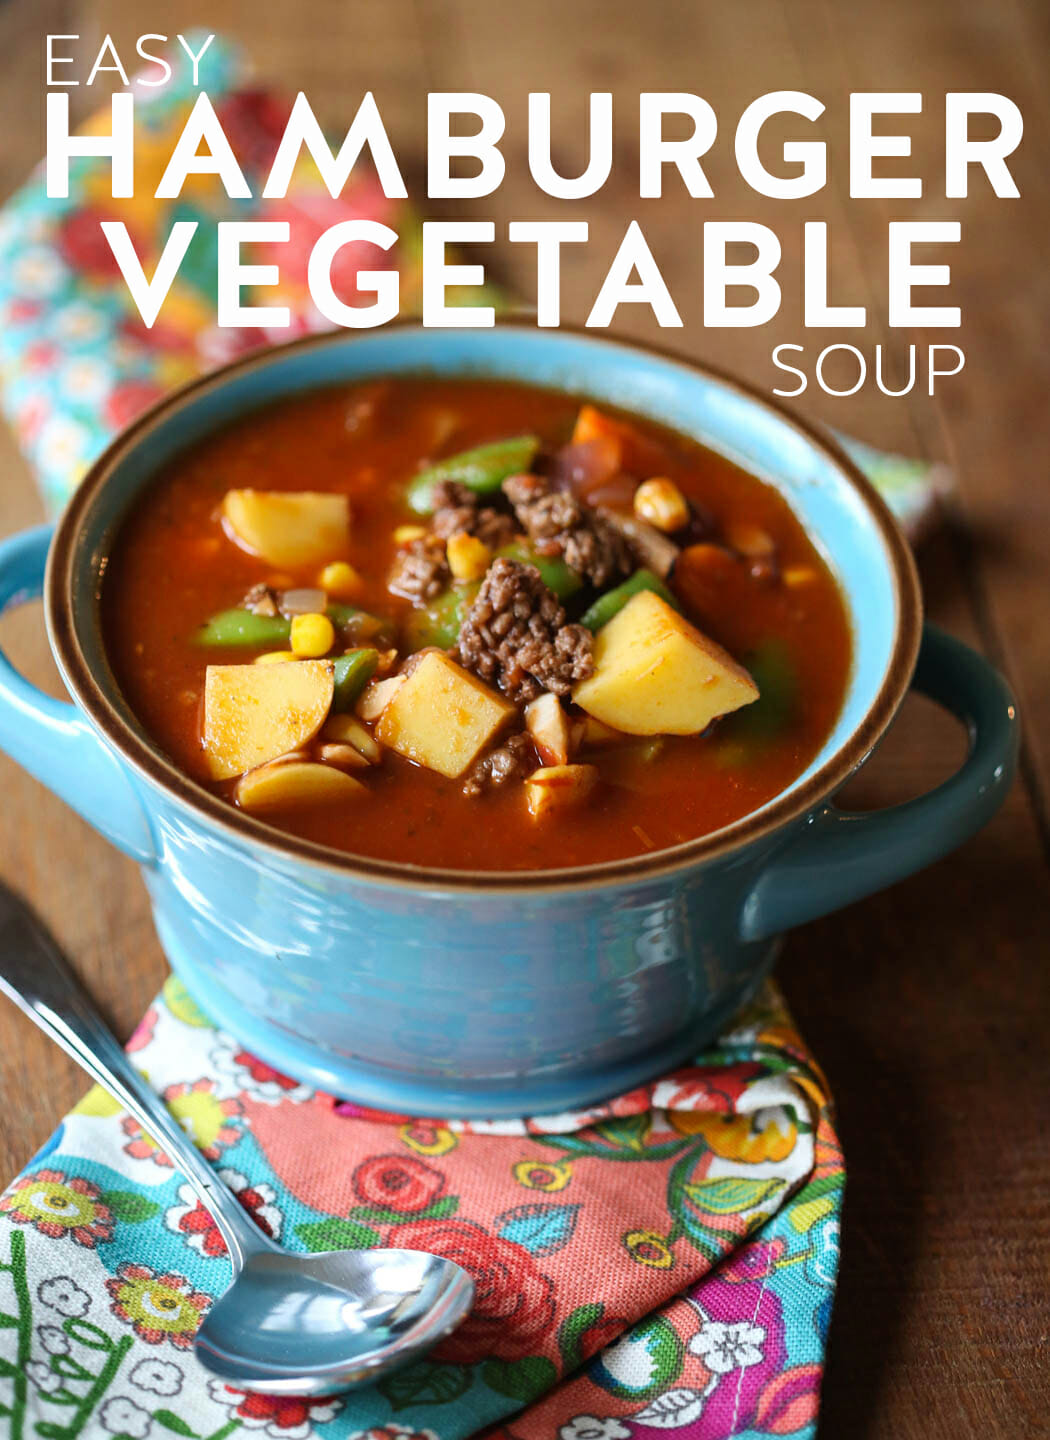 Easy Hamburger Vegetable Soup from Our Best Bites